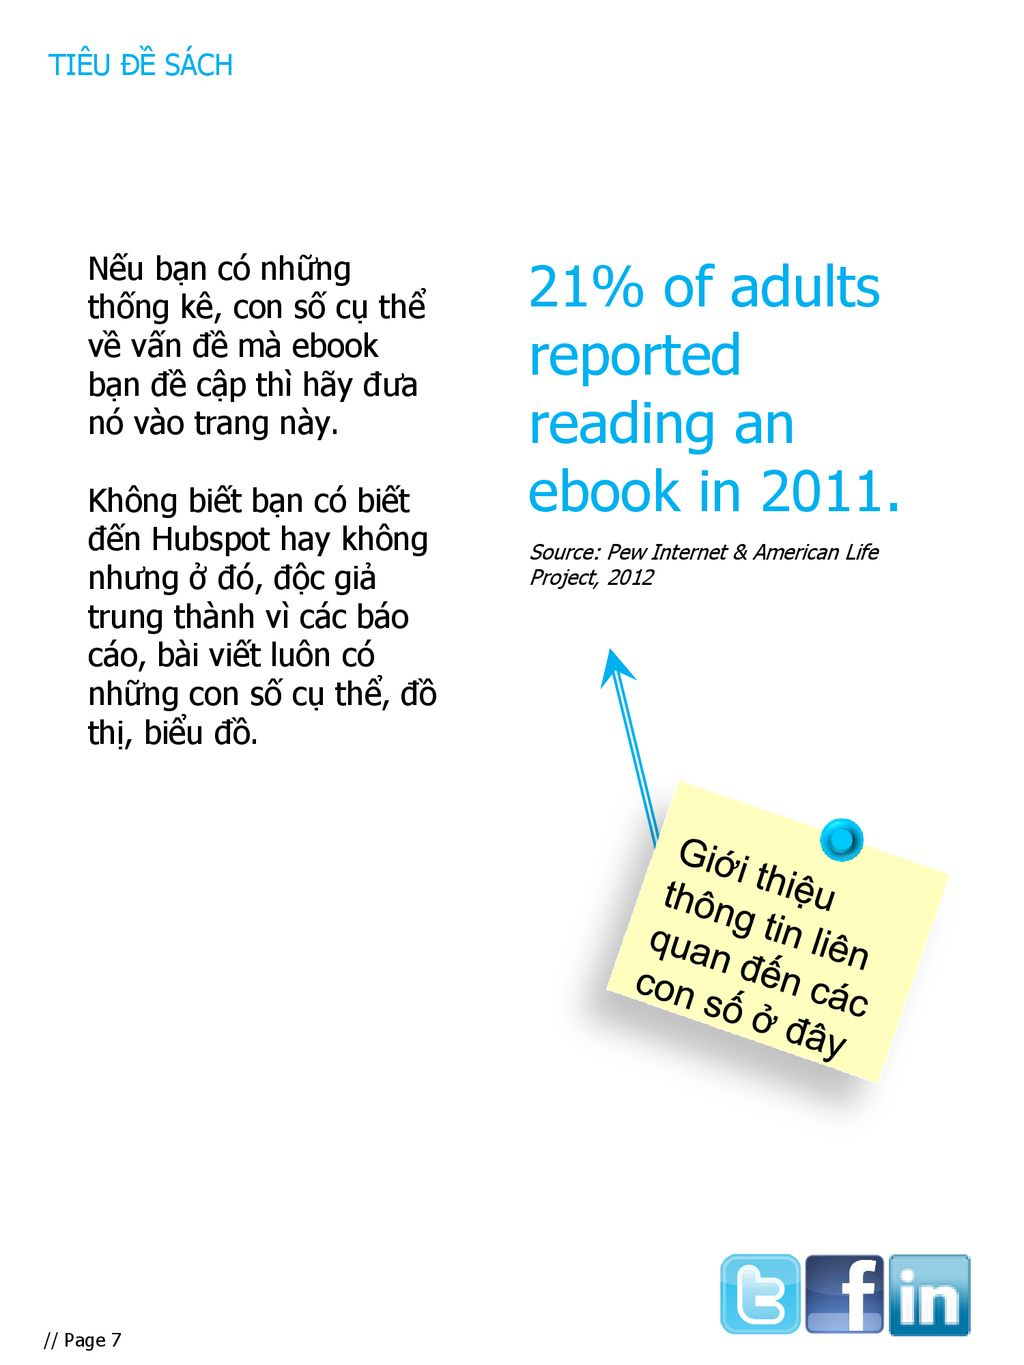 21% of adults reported reading an ebook in 2011.